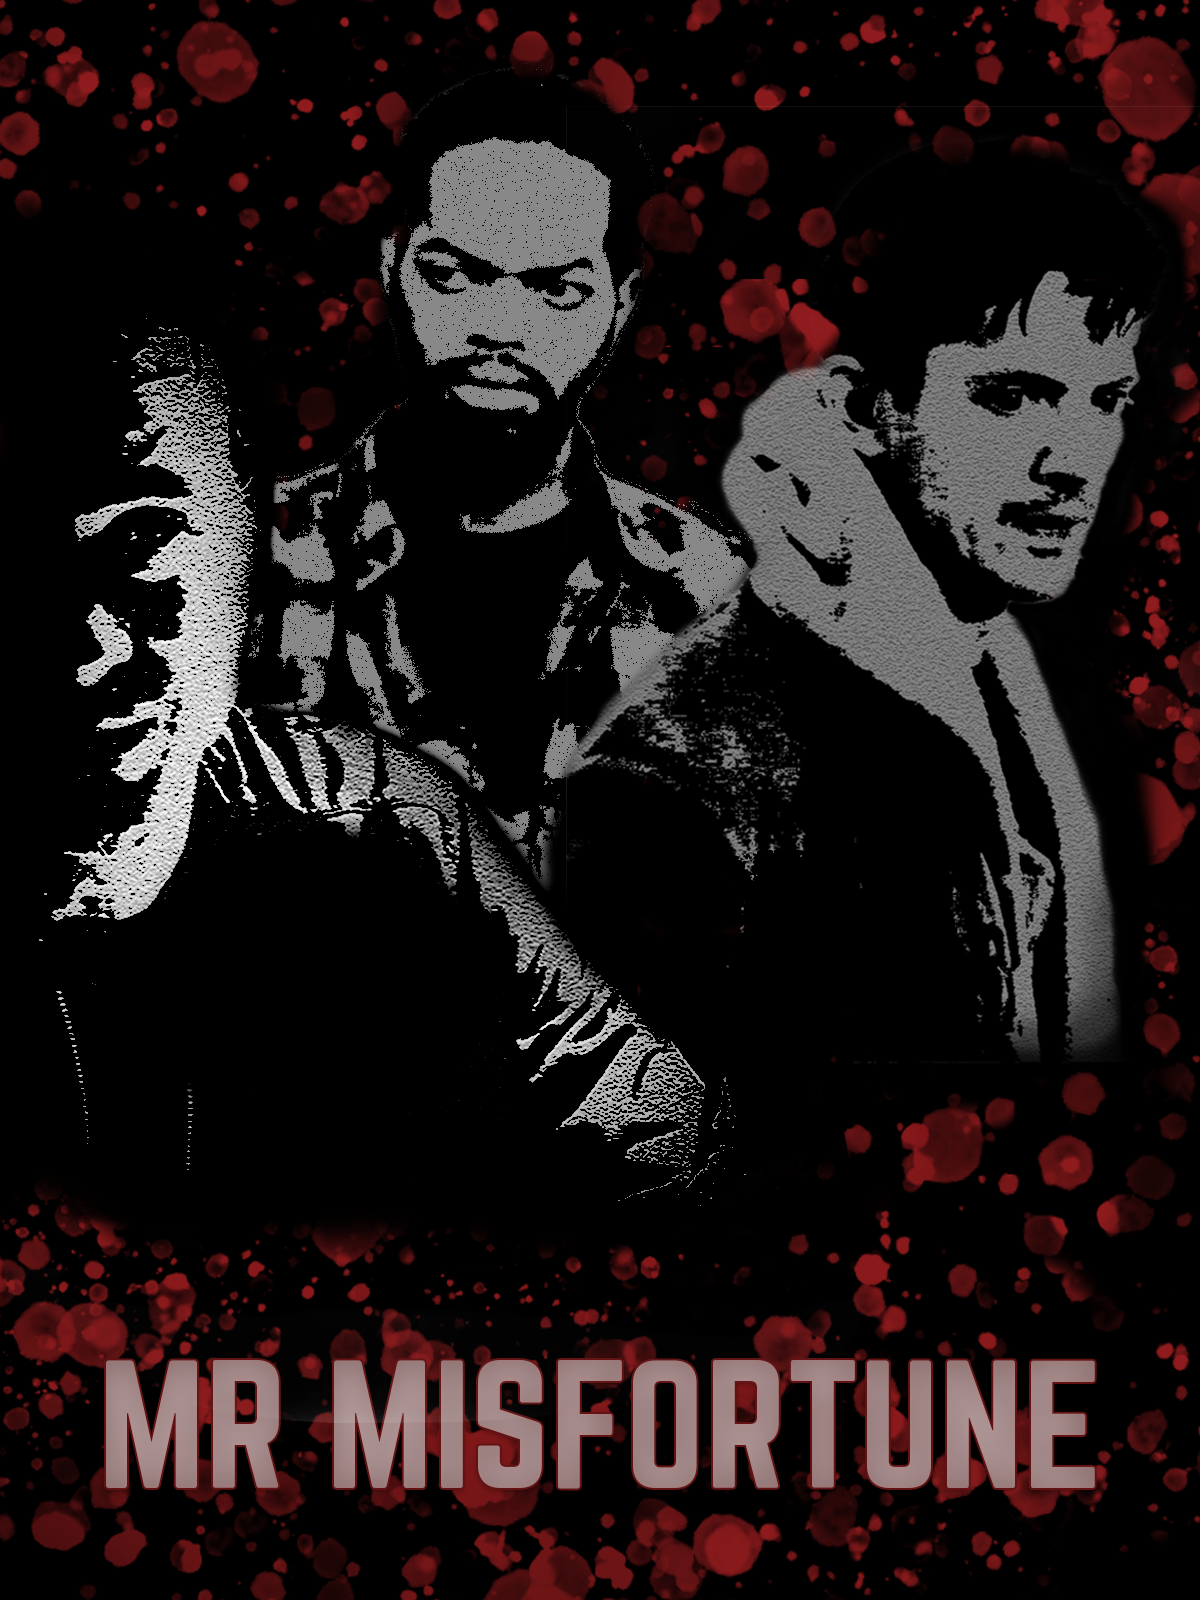 Mr Misfortune thumbnail